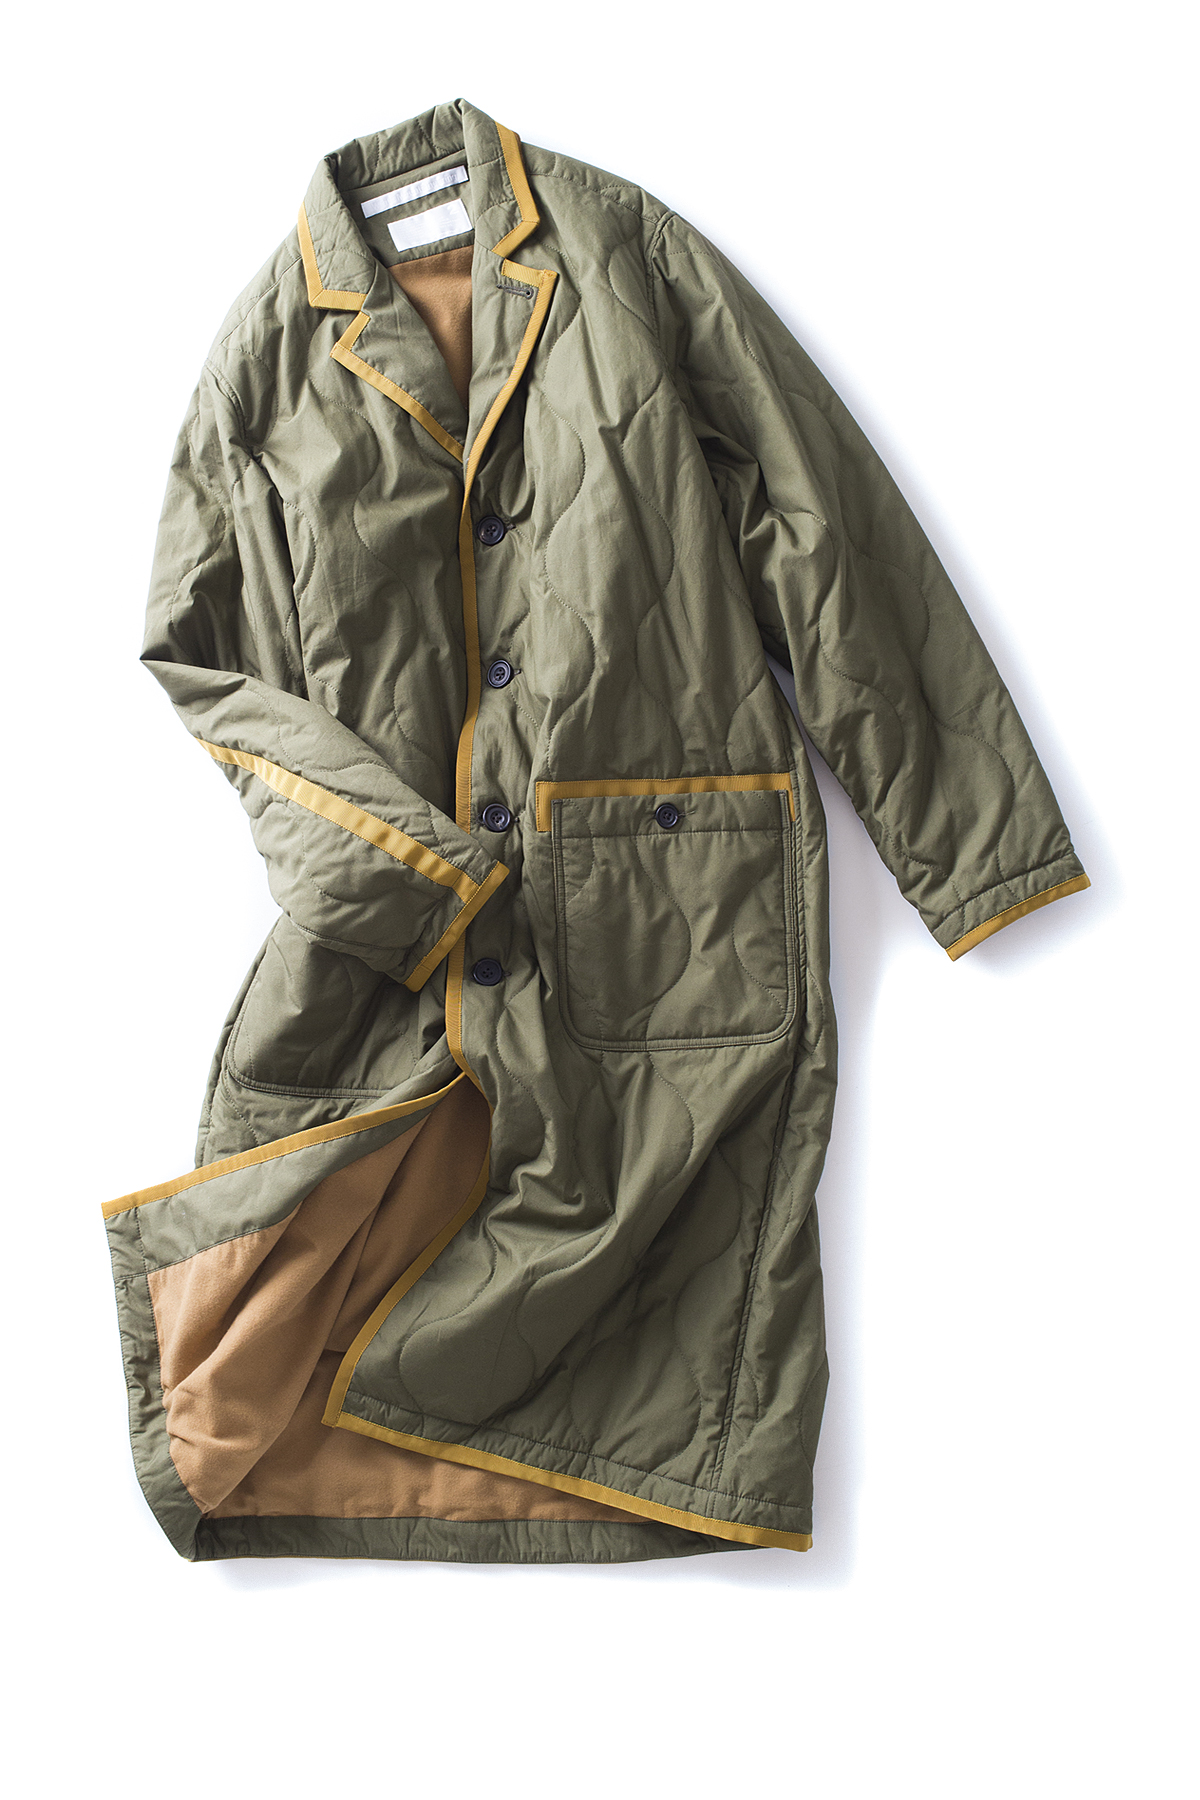 WHITE MOUNTAINEERING : Primaloft Quilted Long Coat (Khaki)